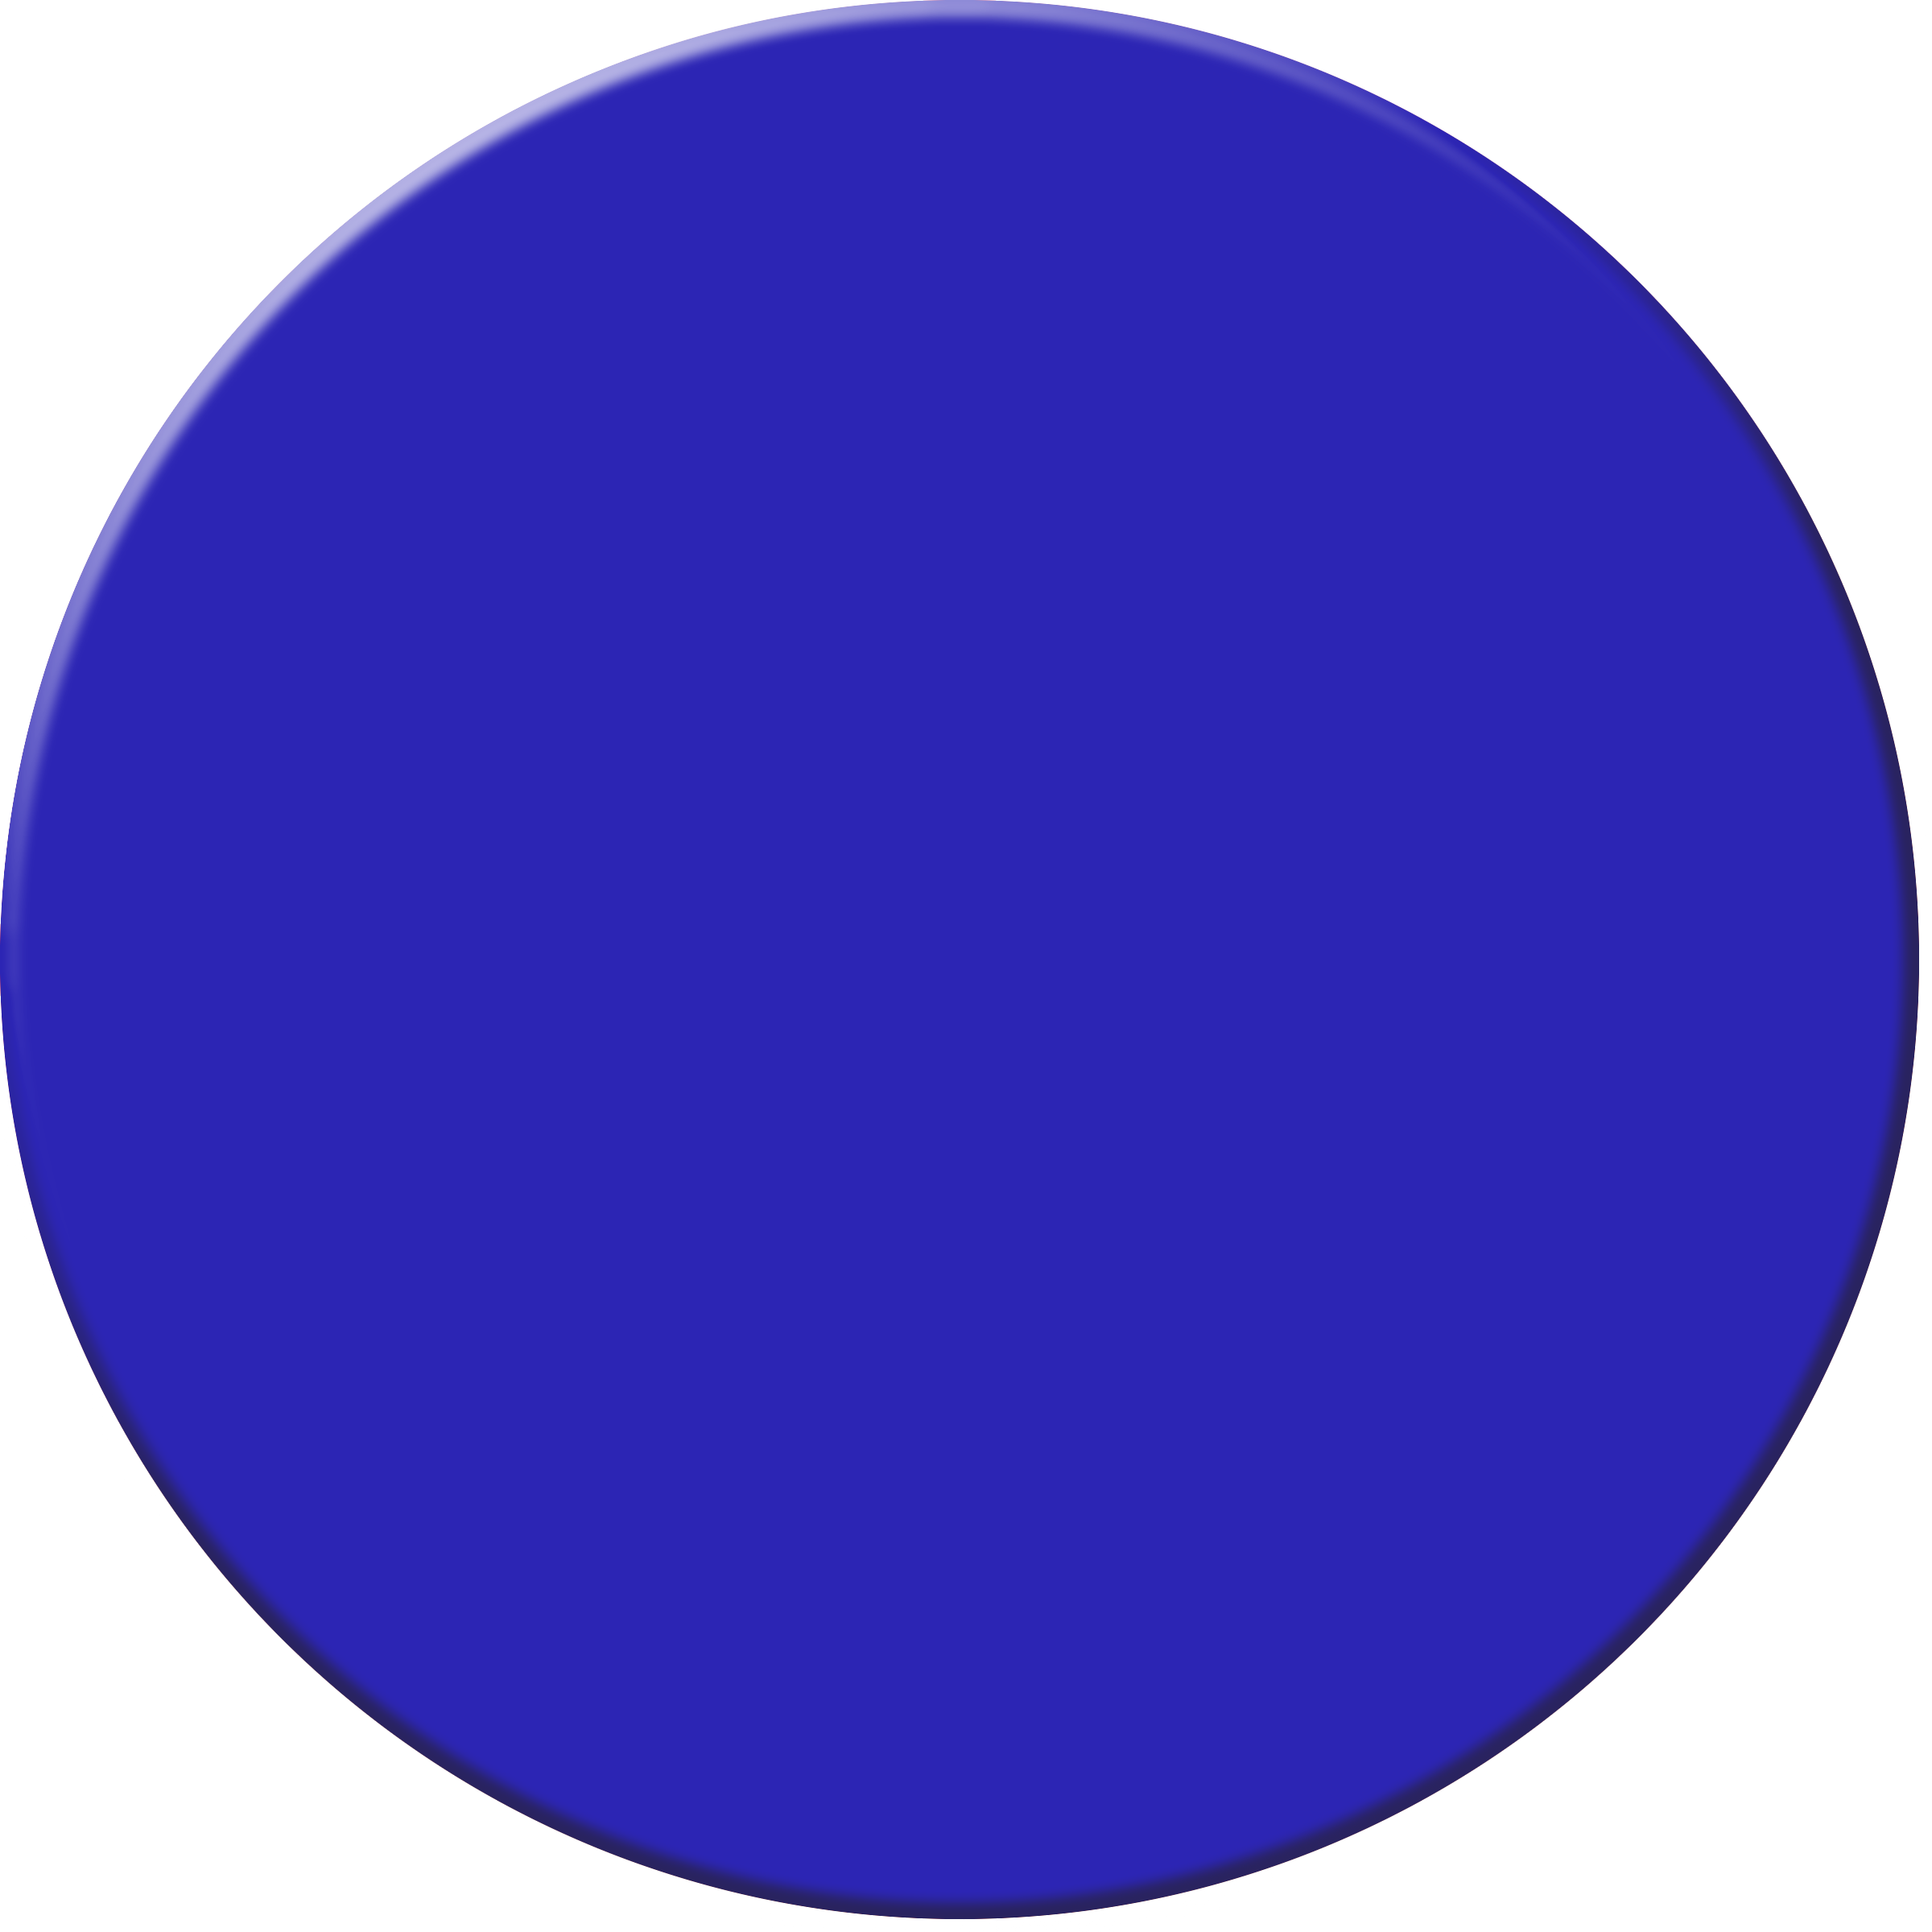 picture royalty free download Ball free images at. Vector blue bluish